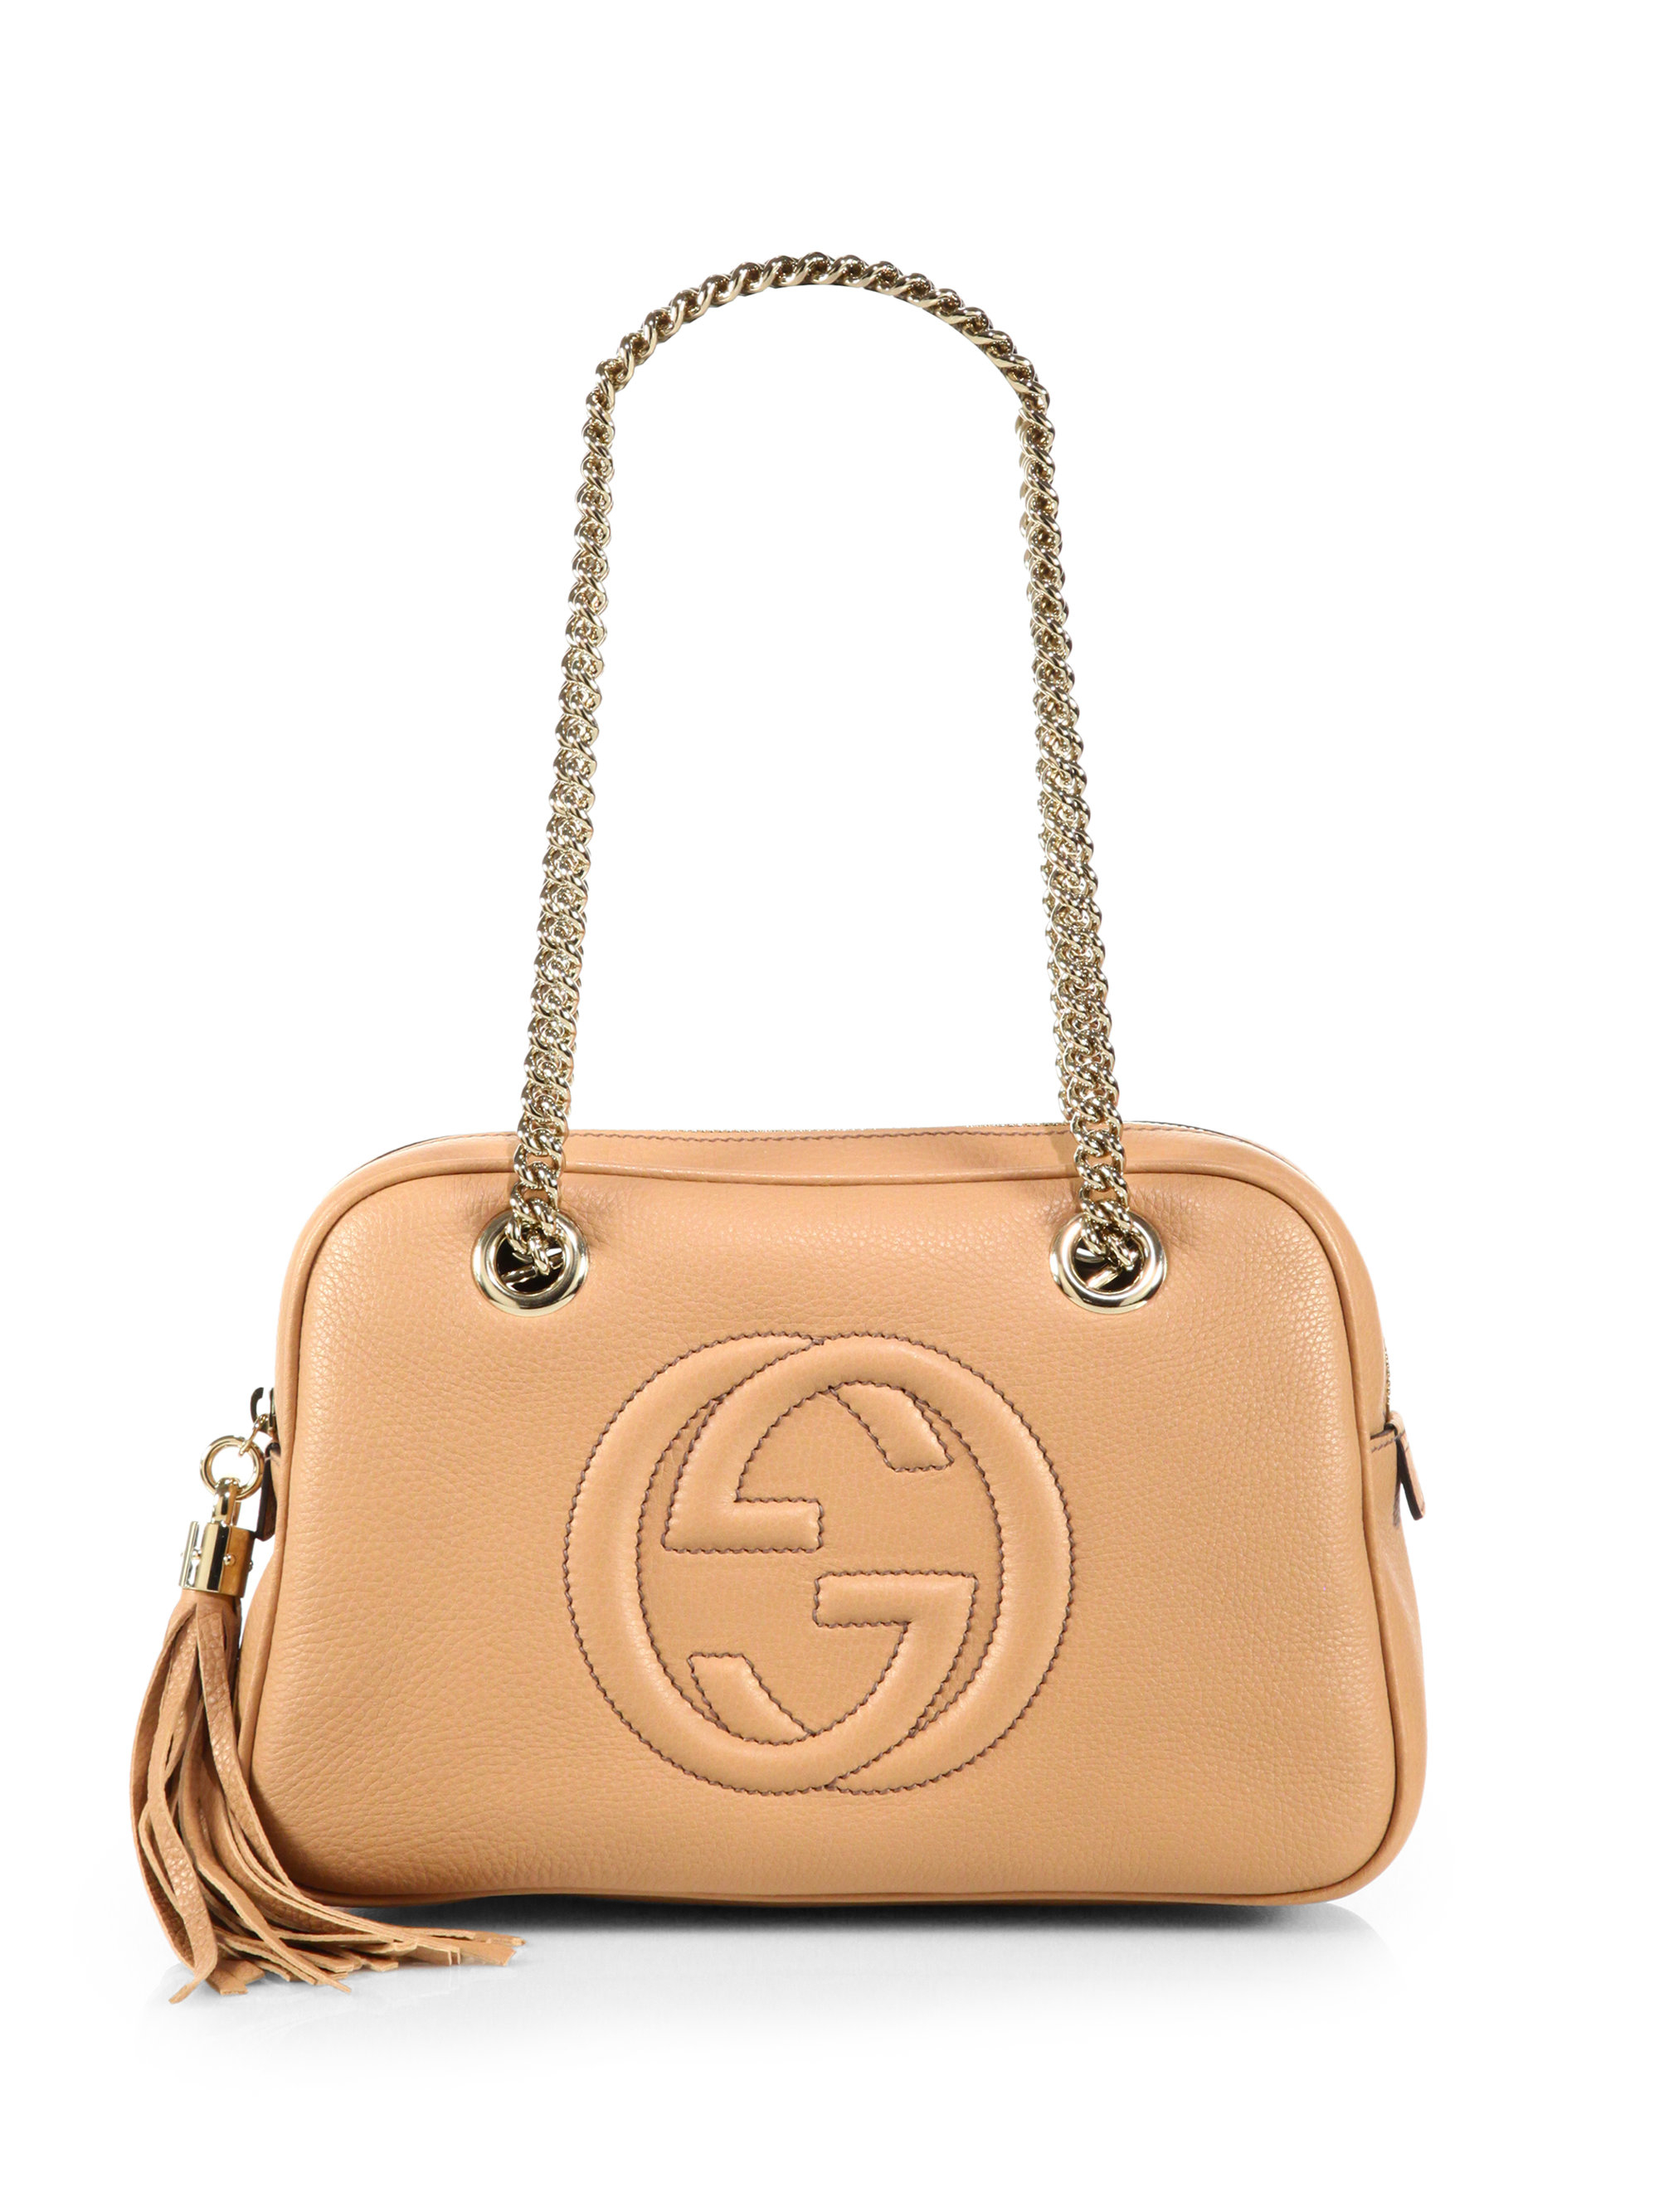 c8790d68fb3 Lyst - Gucci Soho Leather Chain Shoulder Bag in Pink